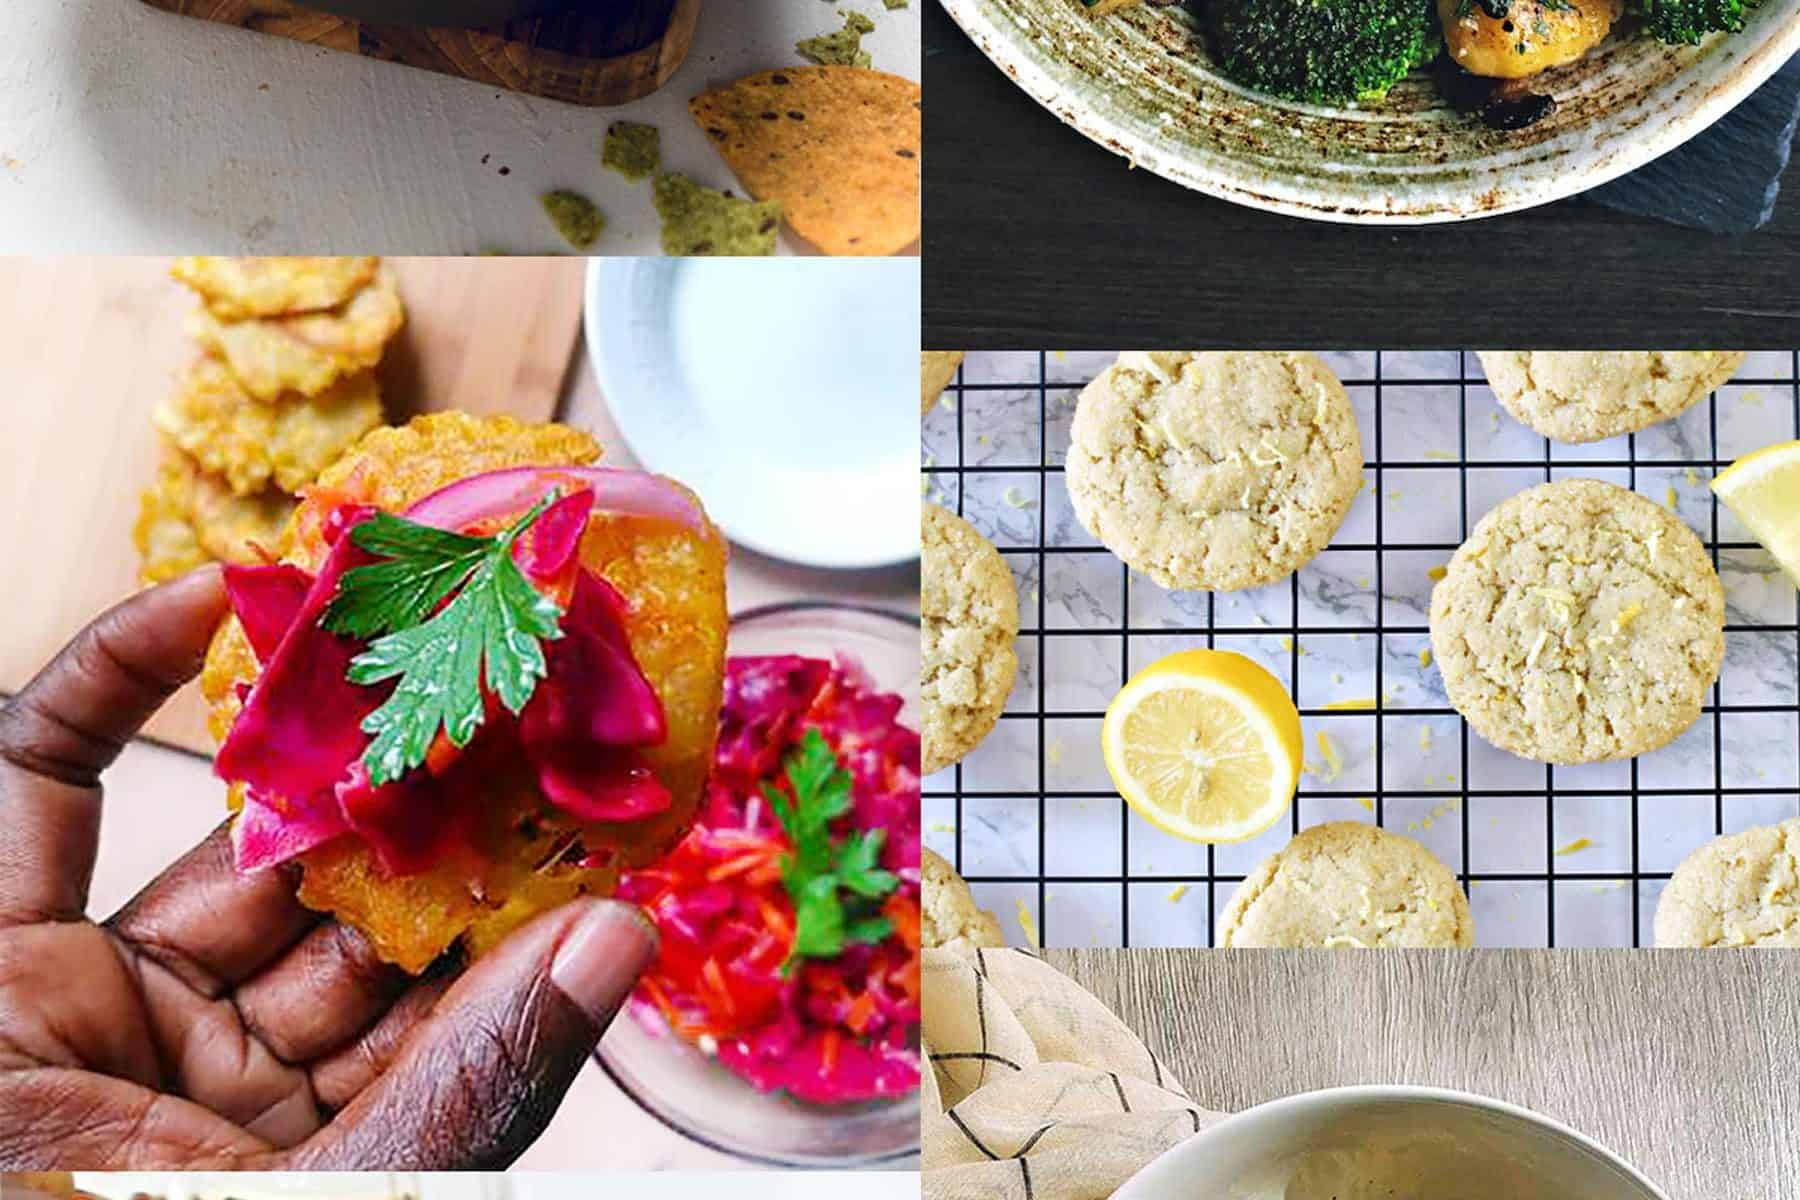 Image collage of Low-Effort Vegan Recipes from Black creators